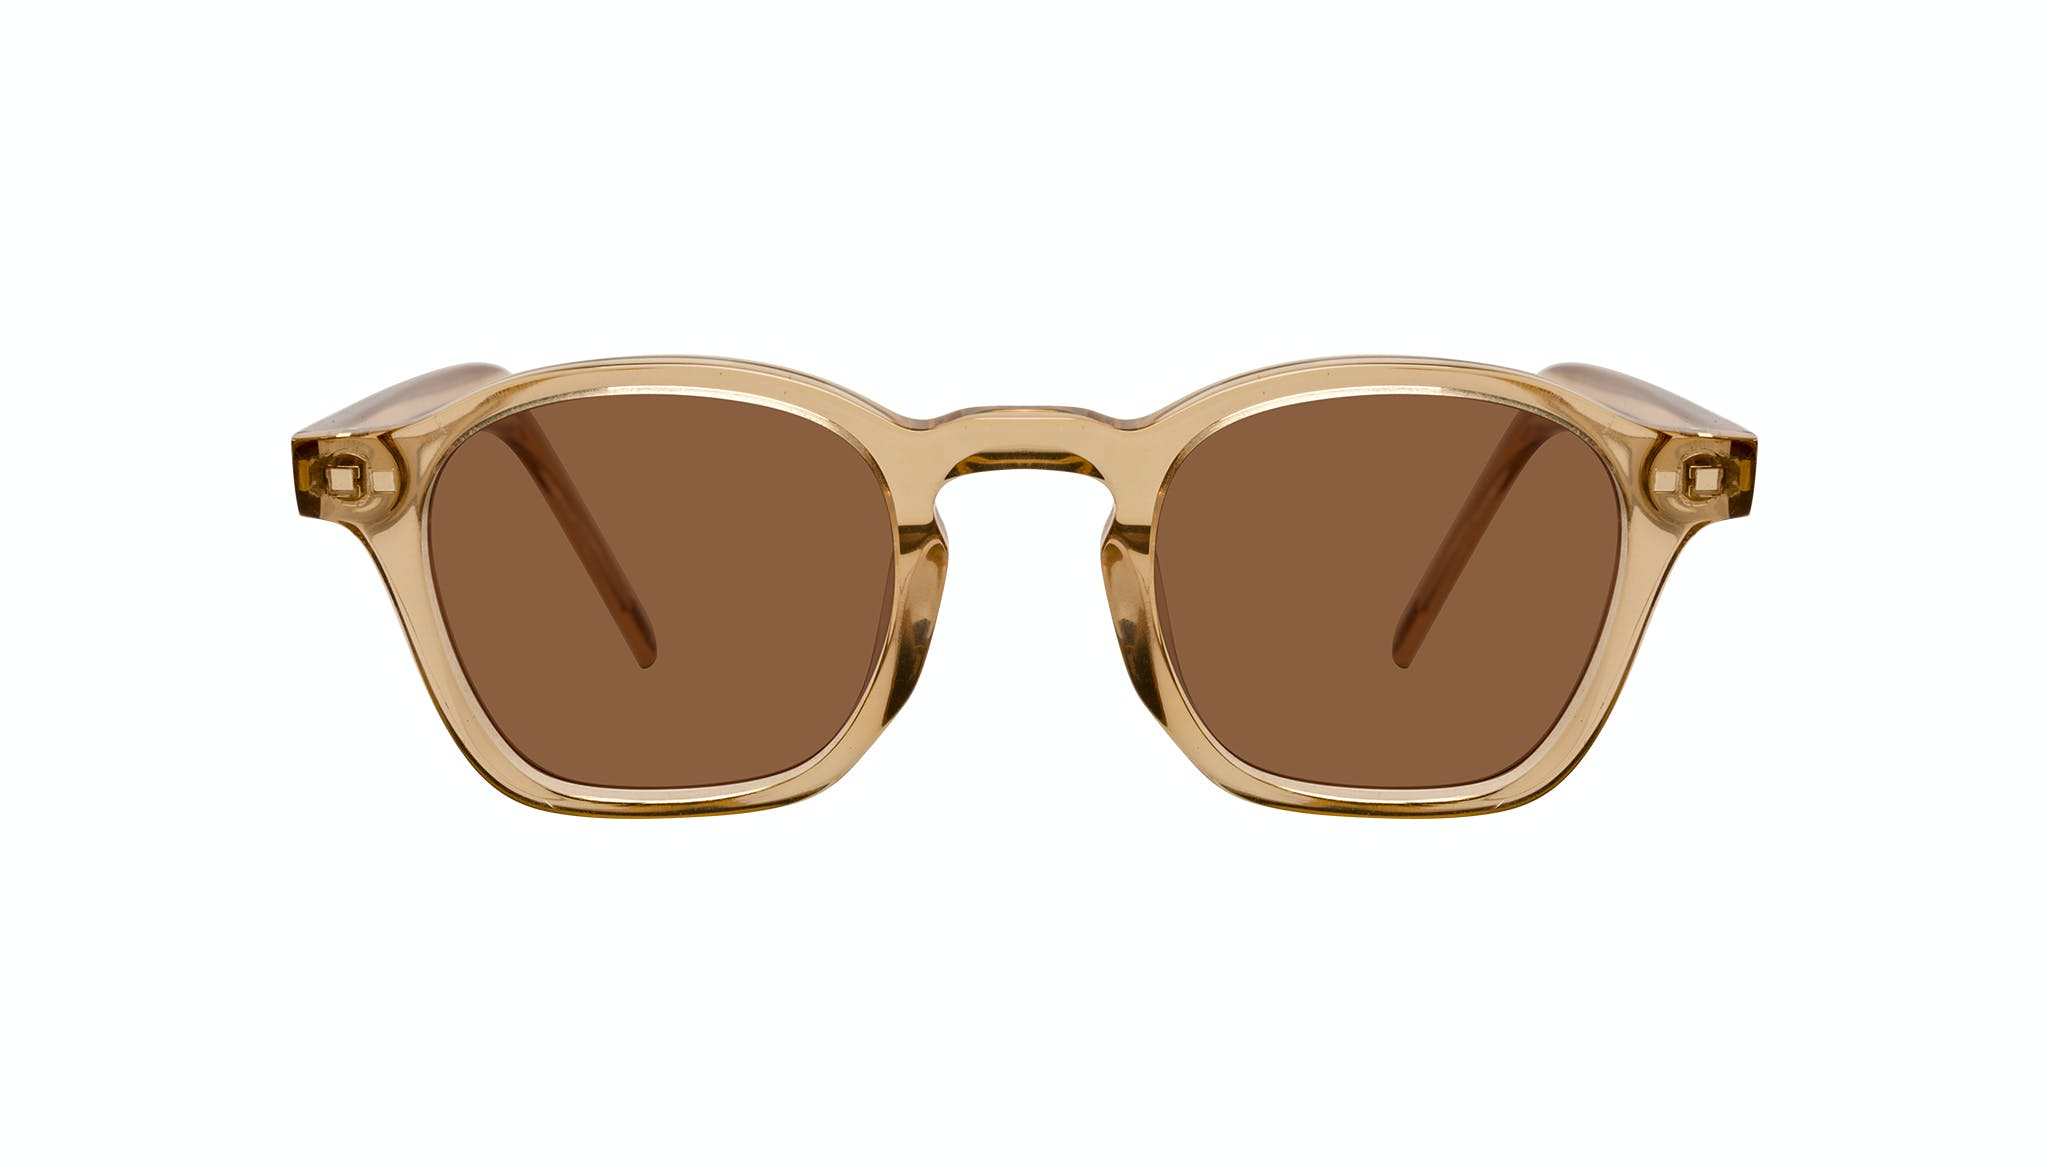 Affordable Fashion Glasses Square Sunglasses Men Brisk Golden Front